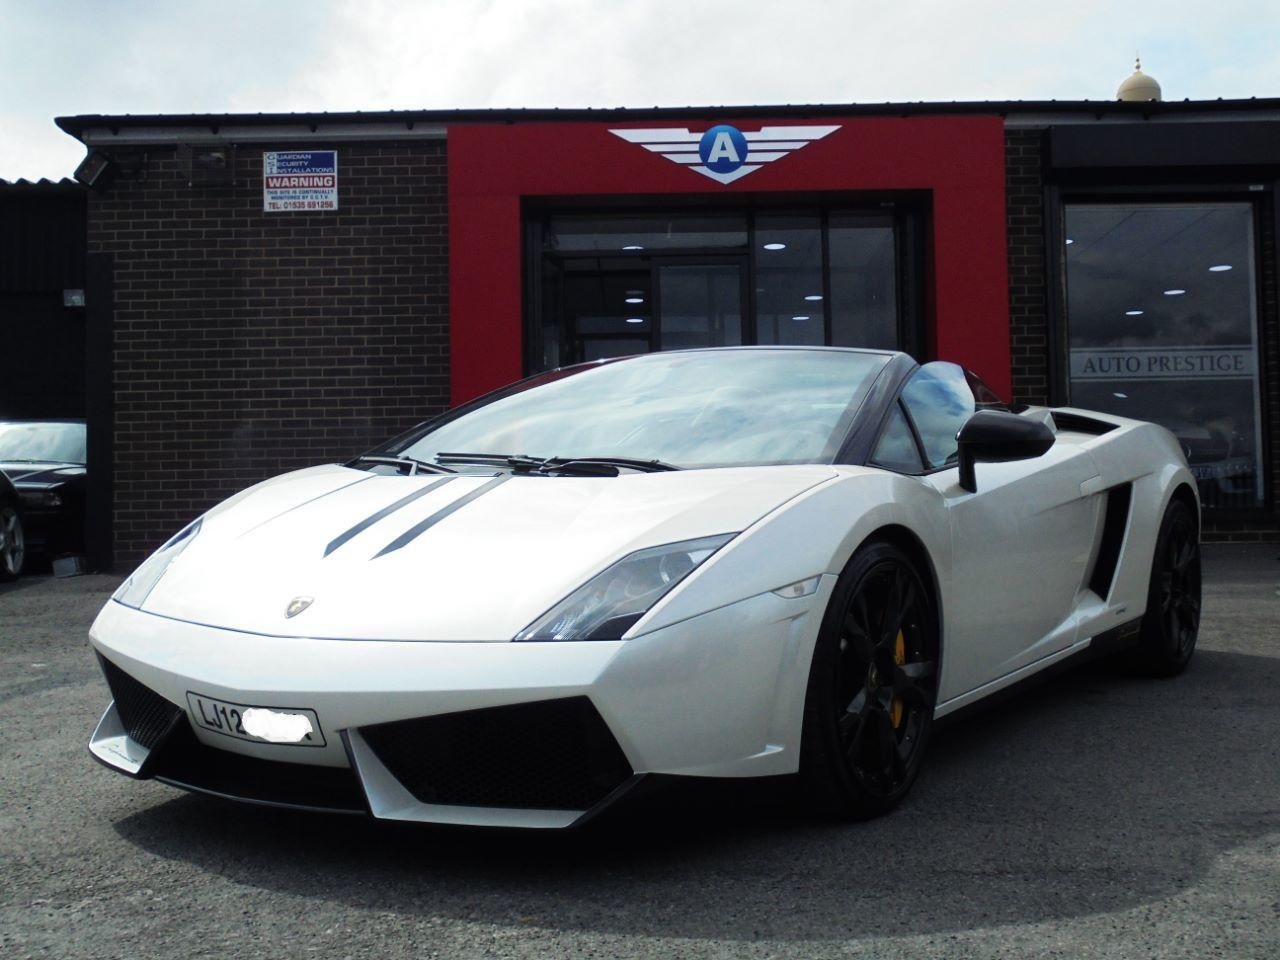 Lamborghini Gallardo 5.2 LP 560-4 SPIDER FACELIFT MODEL WITH PERFORMANTE SPECIFICATION Convertible Petrol Pearl White